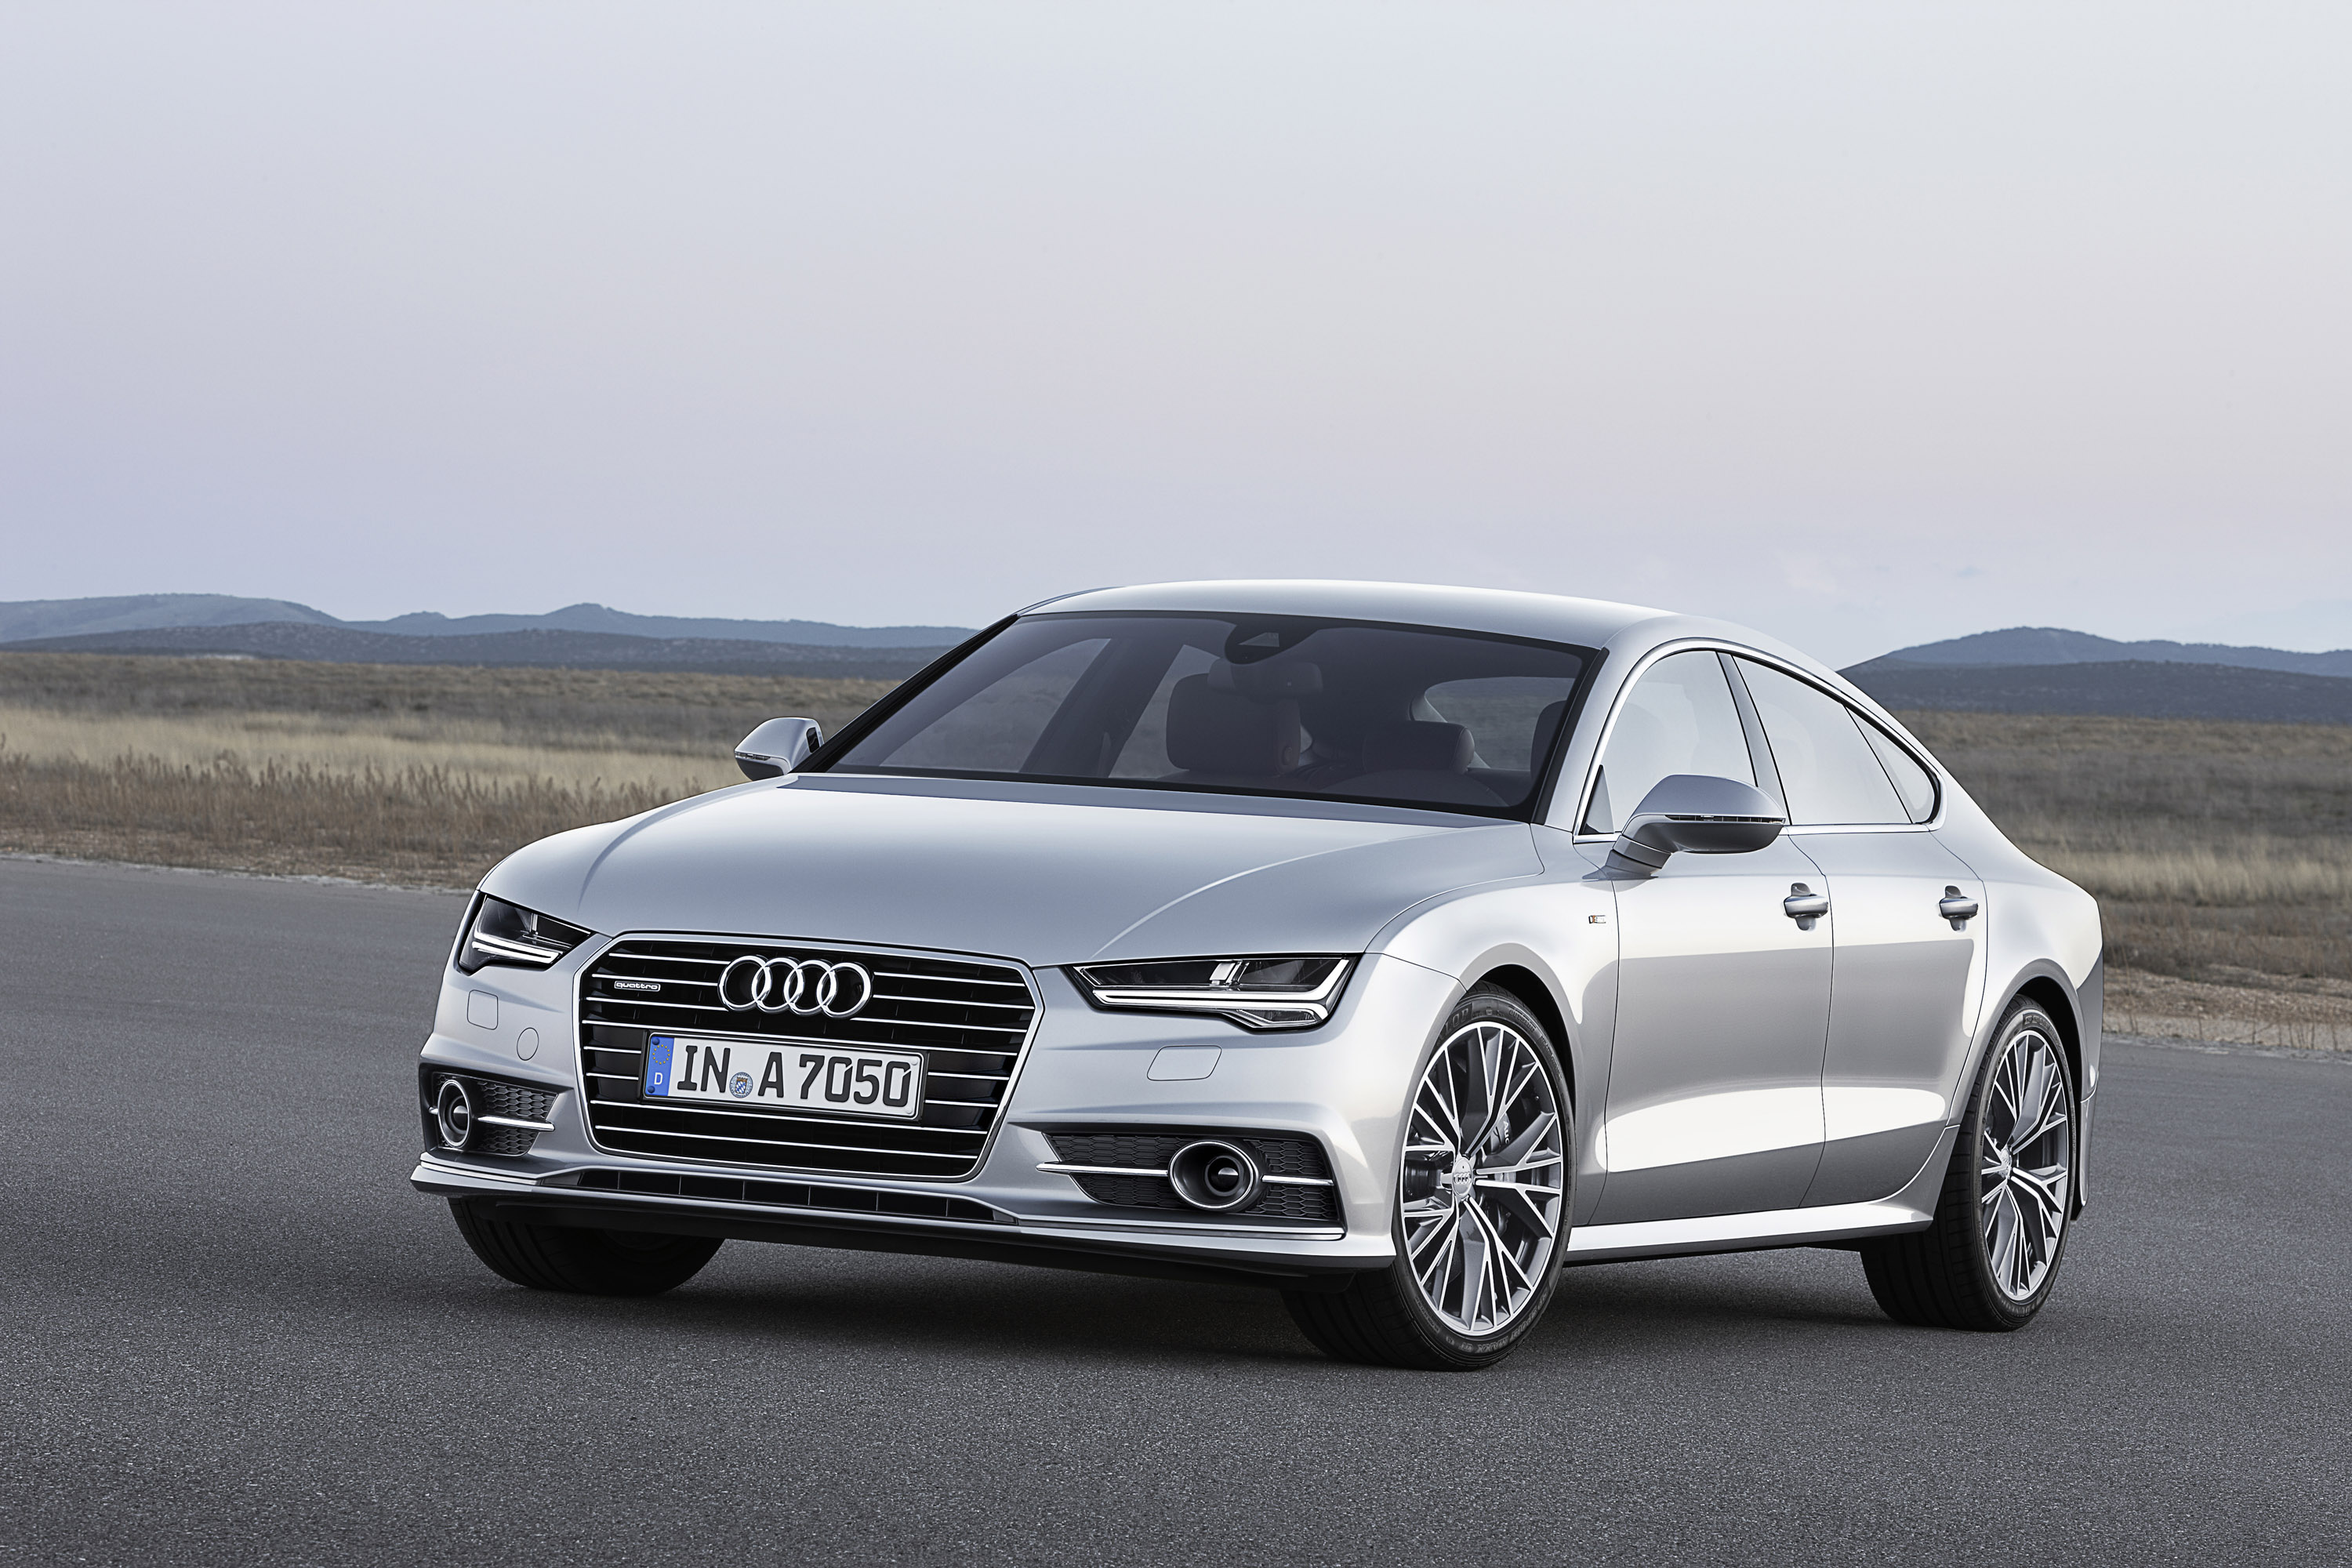 2014 audi a7 sportback facelift price. Black Bedroom Furniture Sets. Home Design Ideas